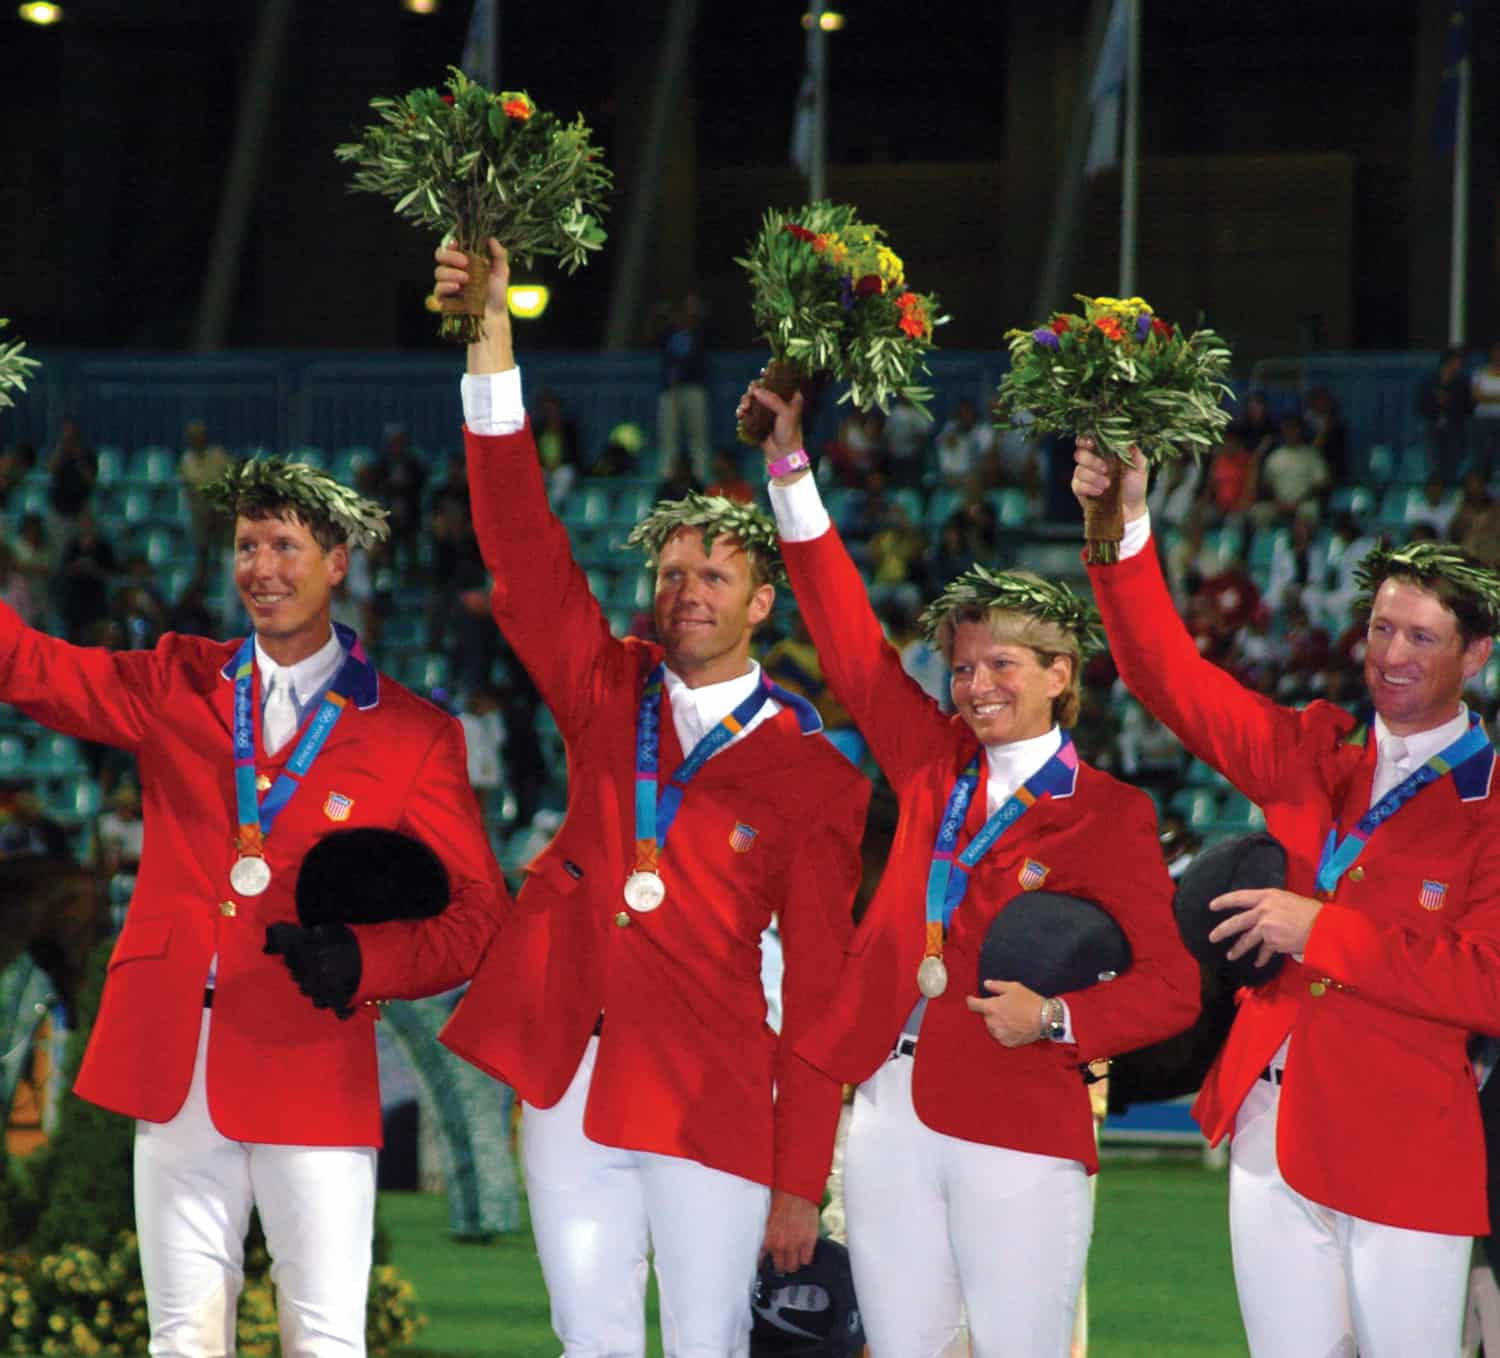 jumping-2004-olympics-by-Beezie-Podium-2004-Olympics-Athens-by-Diana-De-Rosa-Photography